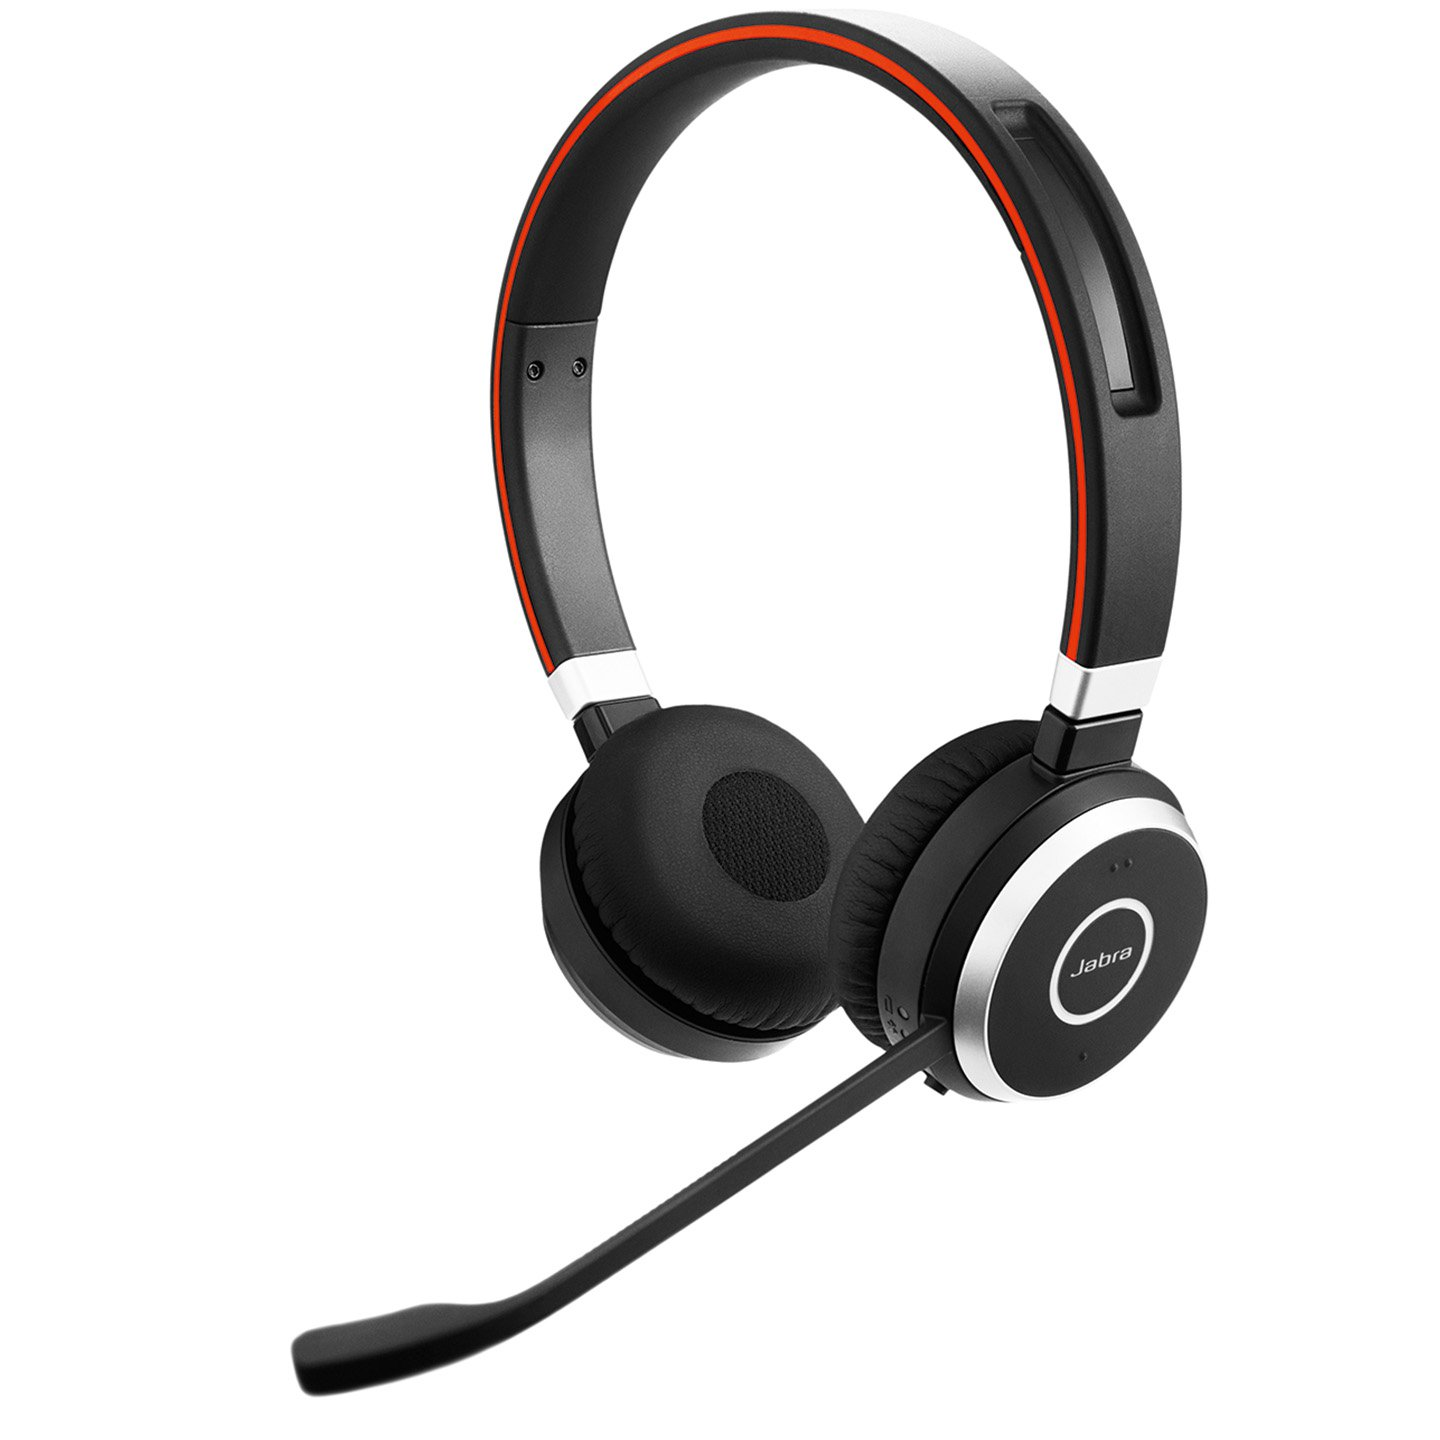 Jabra Evolve 65 Duo Headset